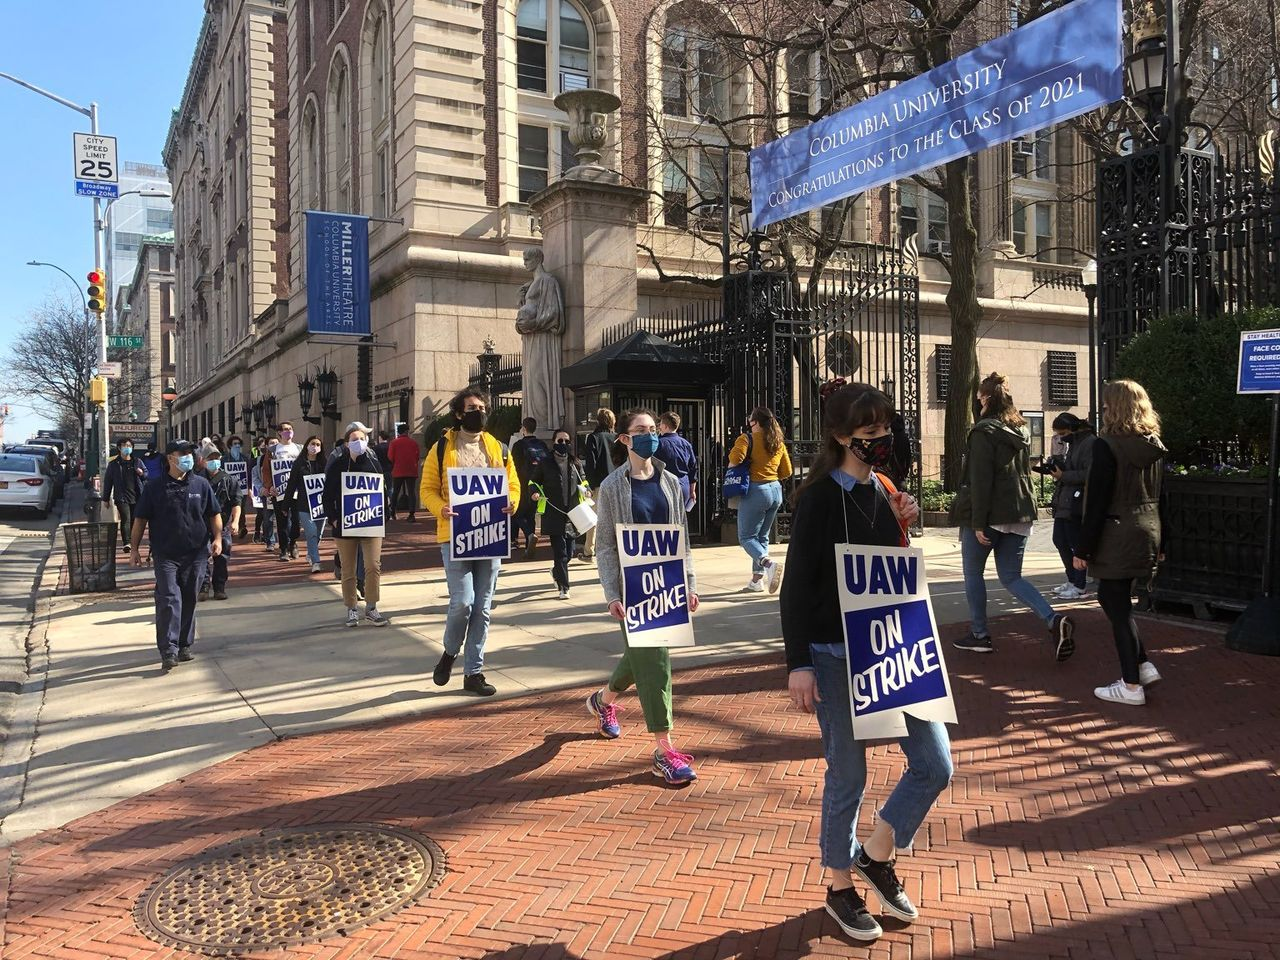 Oppose the UAW sellout of the Columbia graduate student strike!